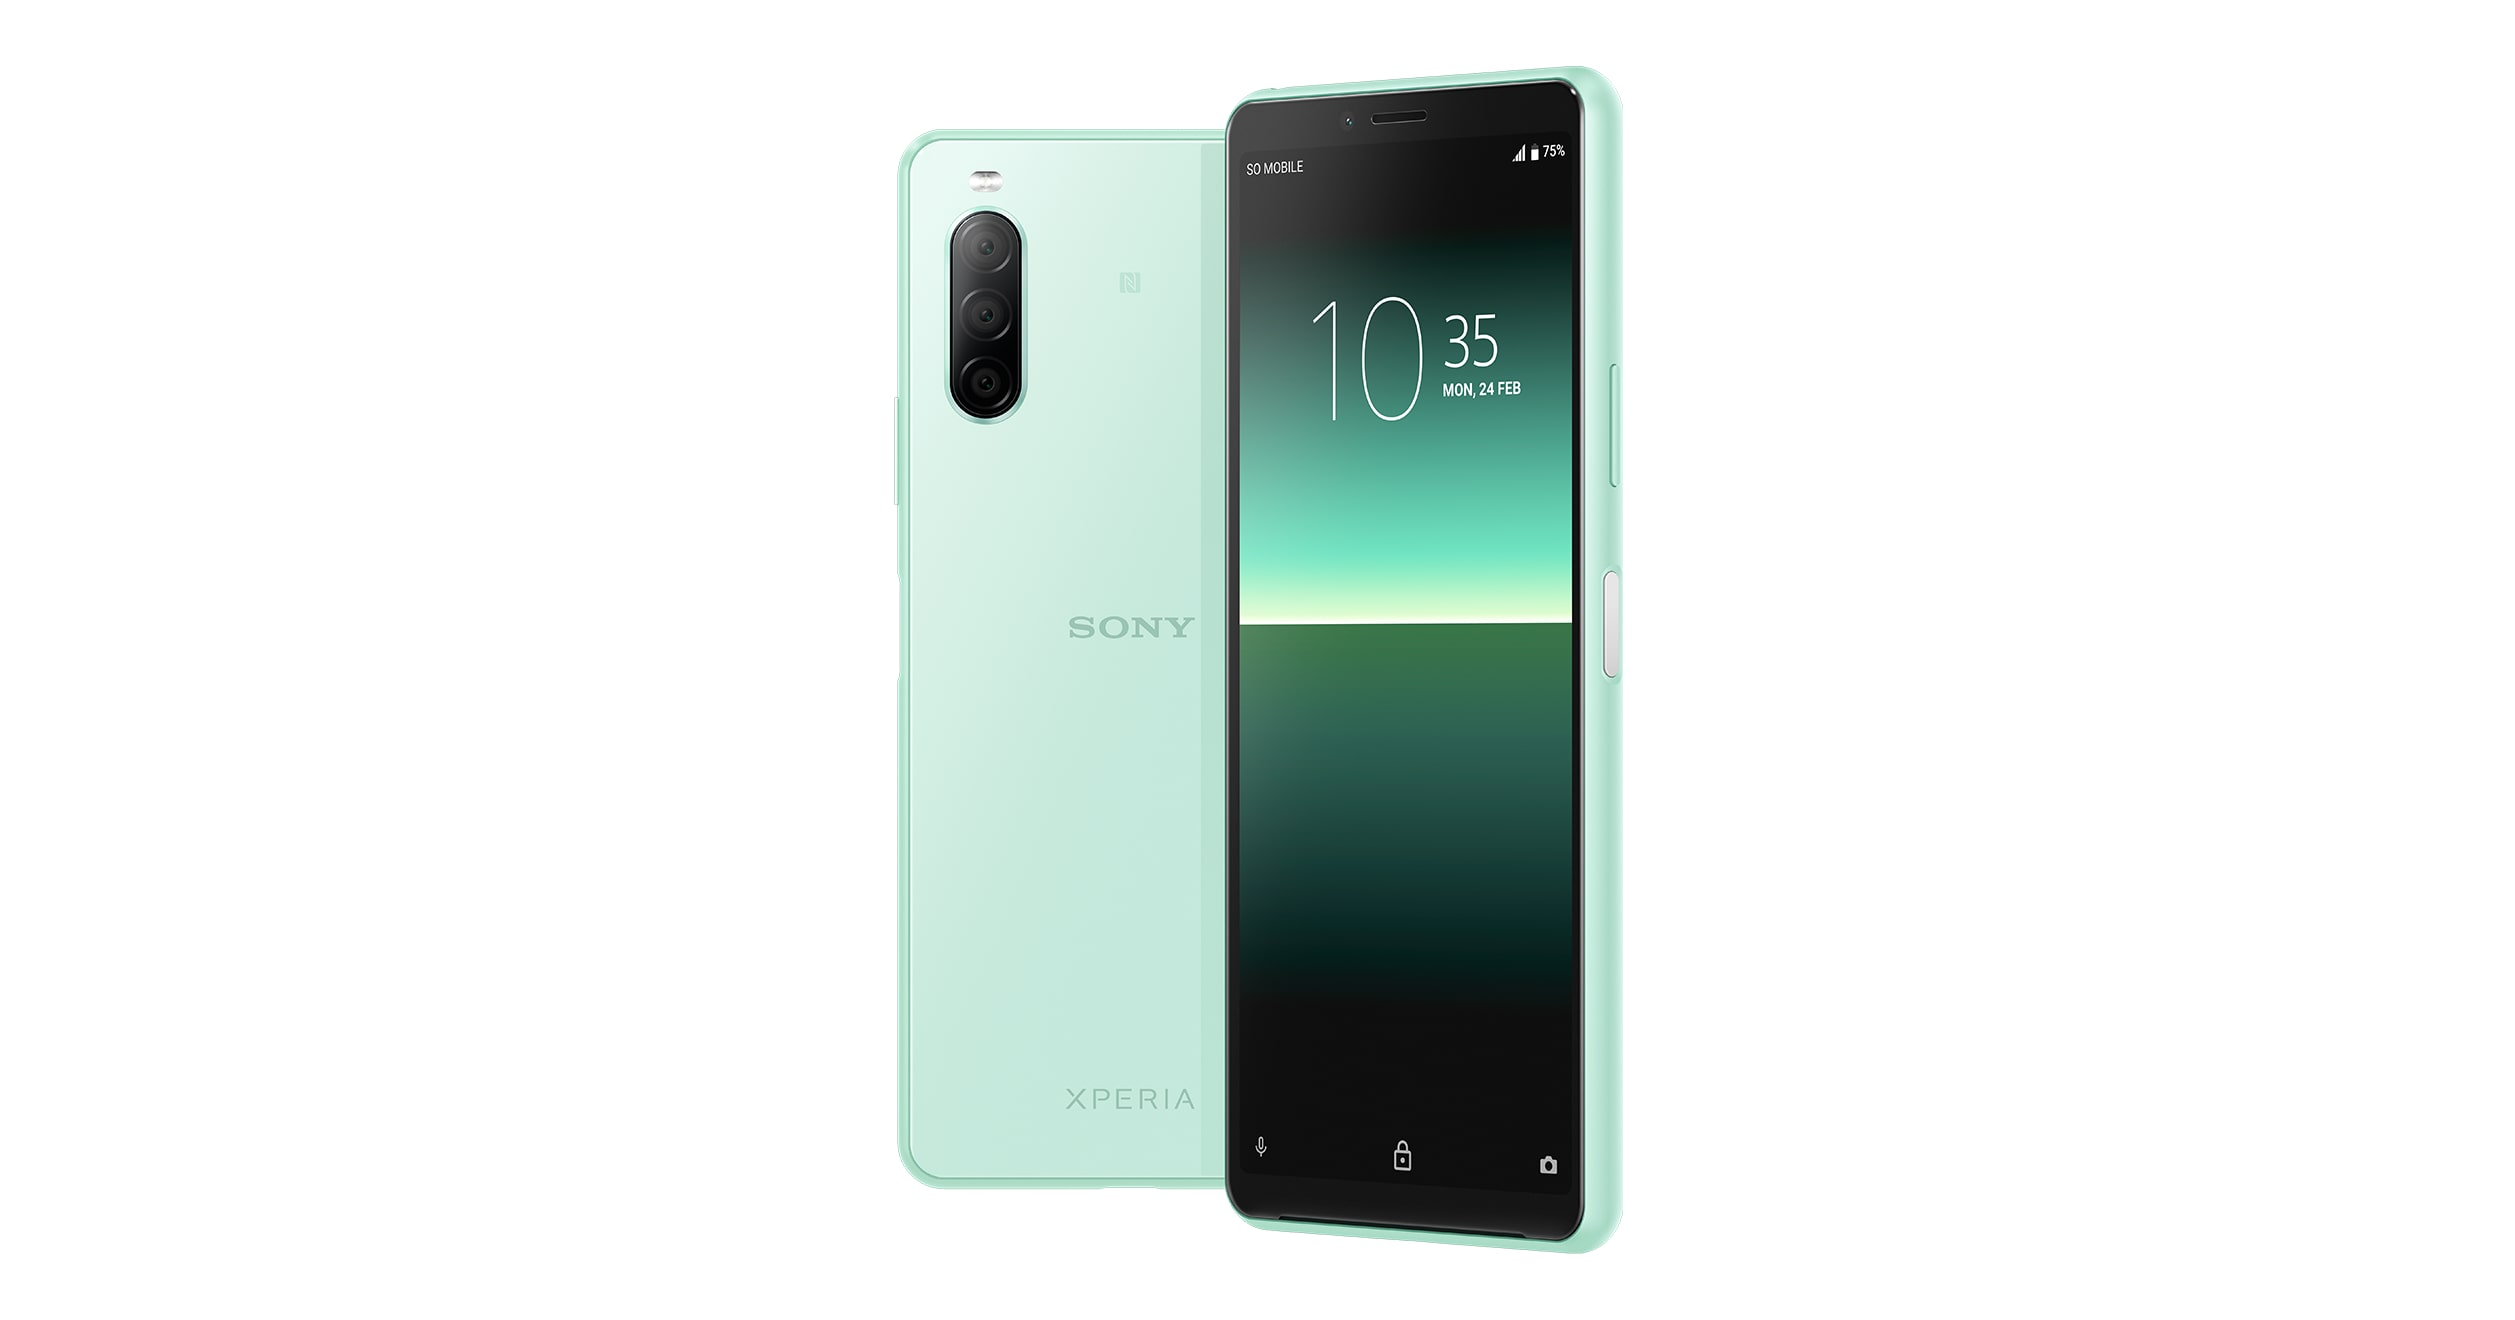 Xperia 10 II | Android smartphone by Sony | Sony MY